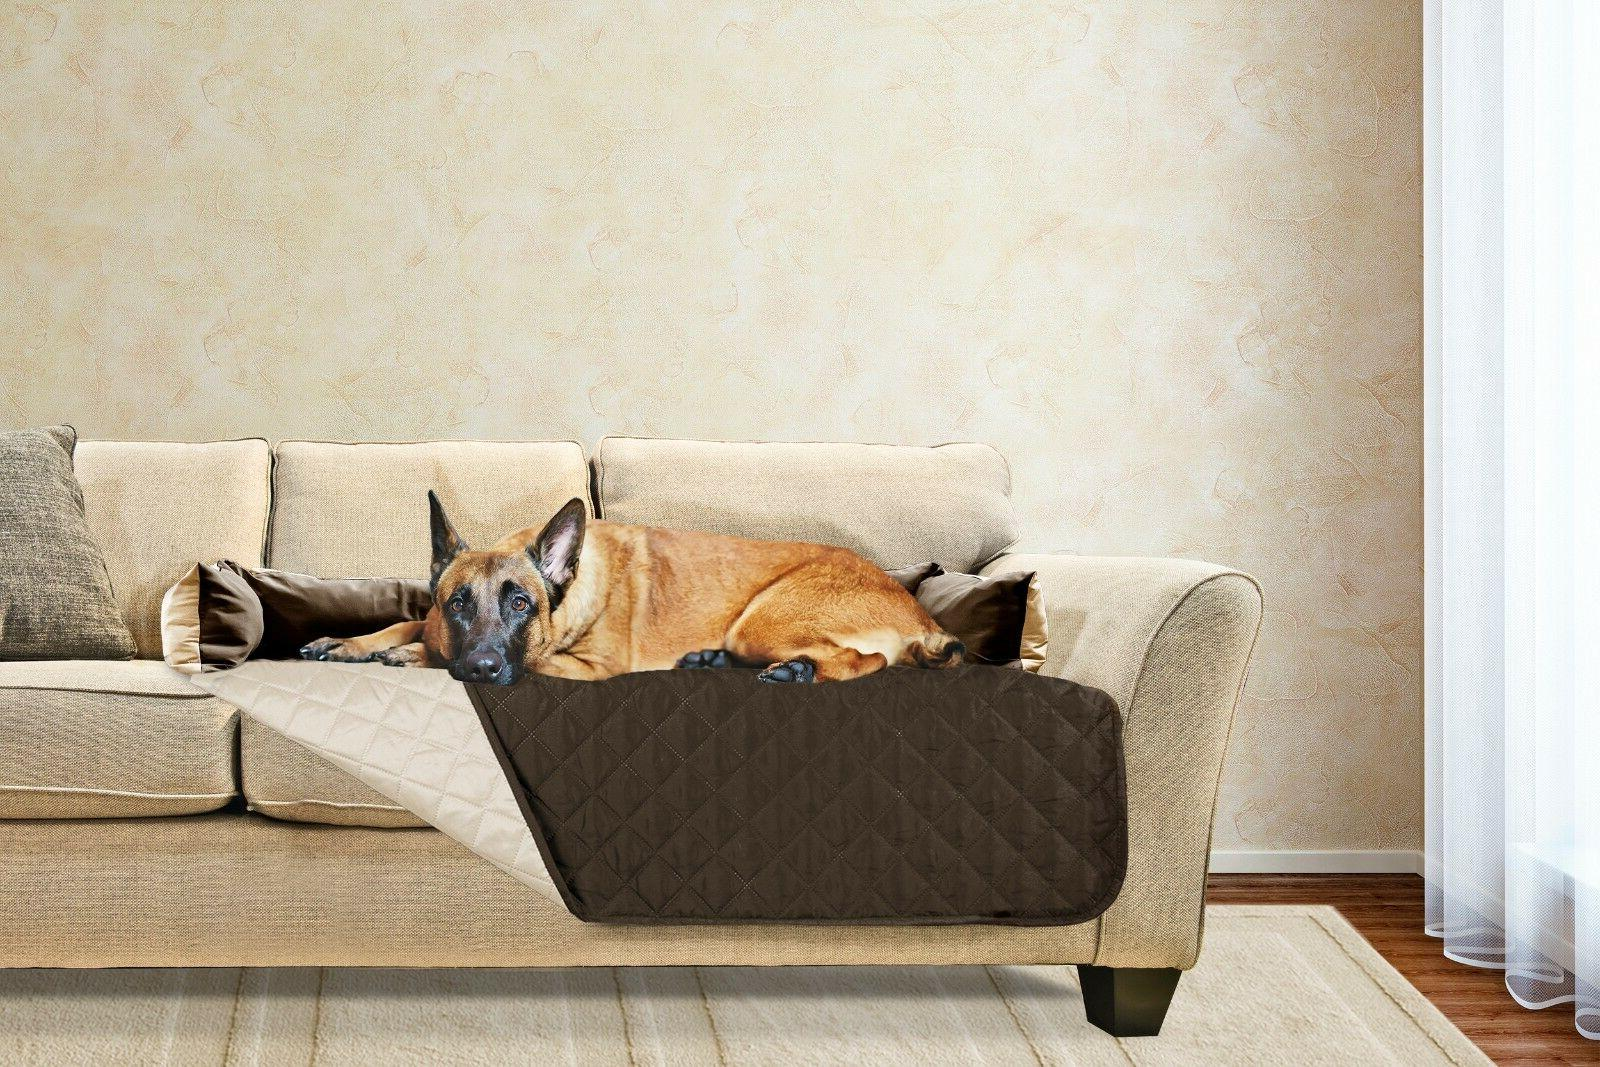 Incredible Furhaven Sofa Buddy Dog Bed Pet Bed Furniture Cover Machost Co Dining Chair Design Ideas Machostcouk